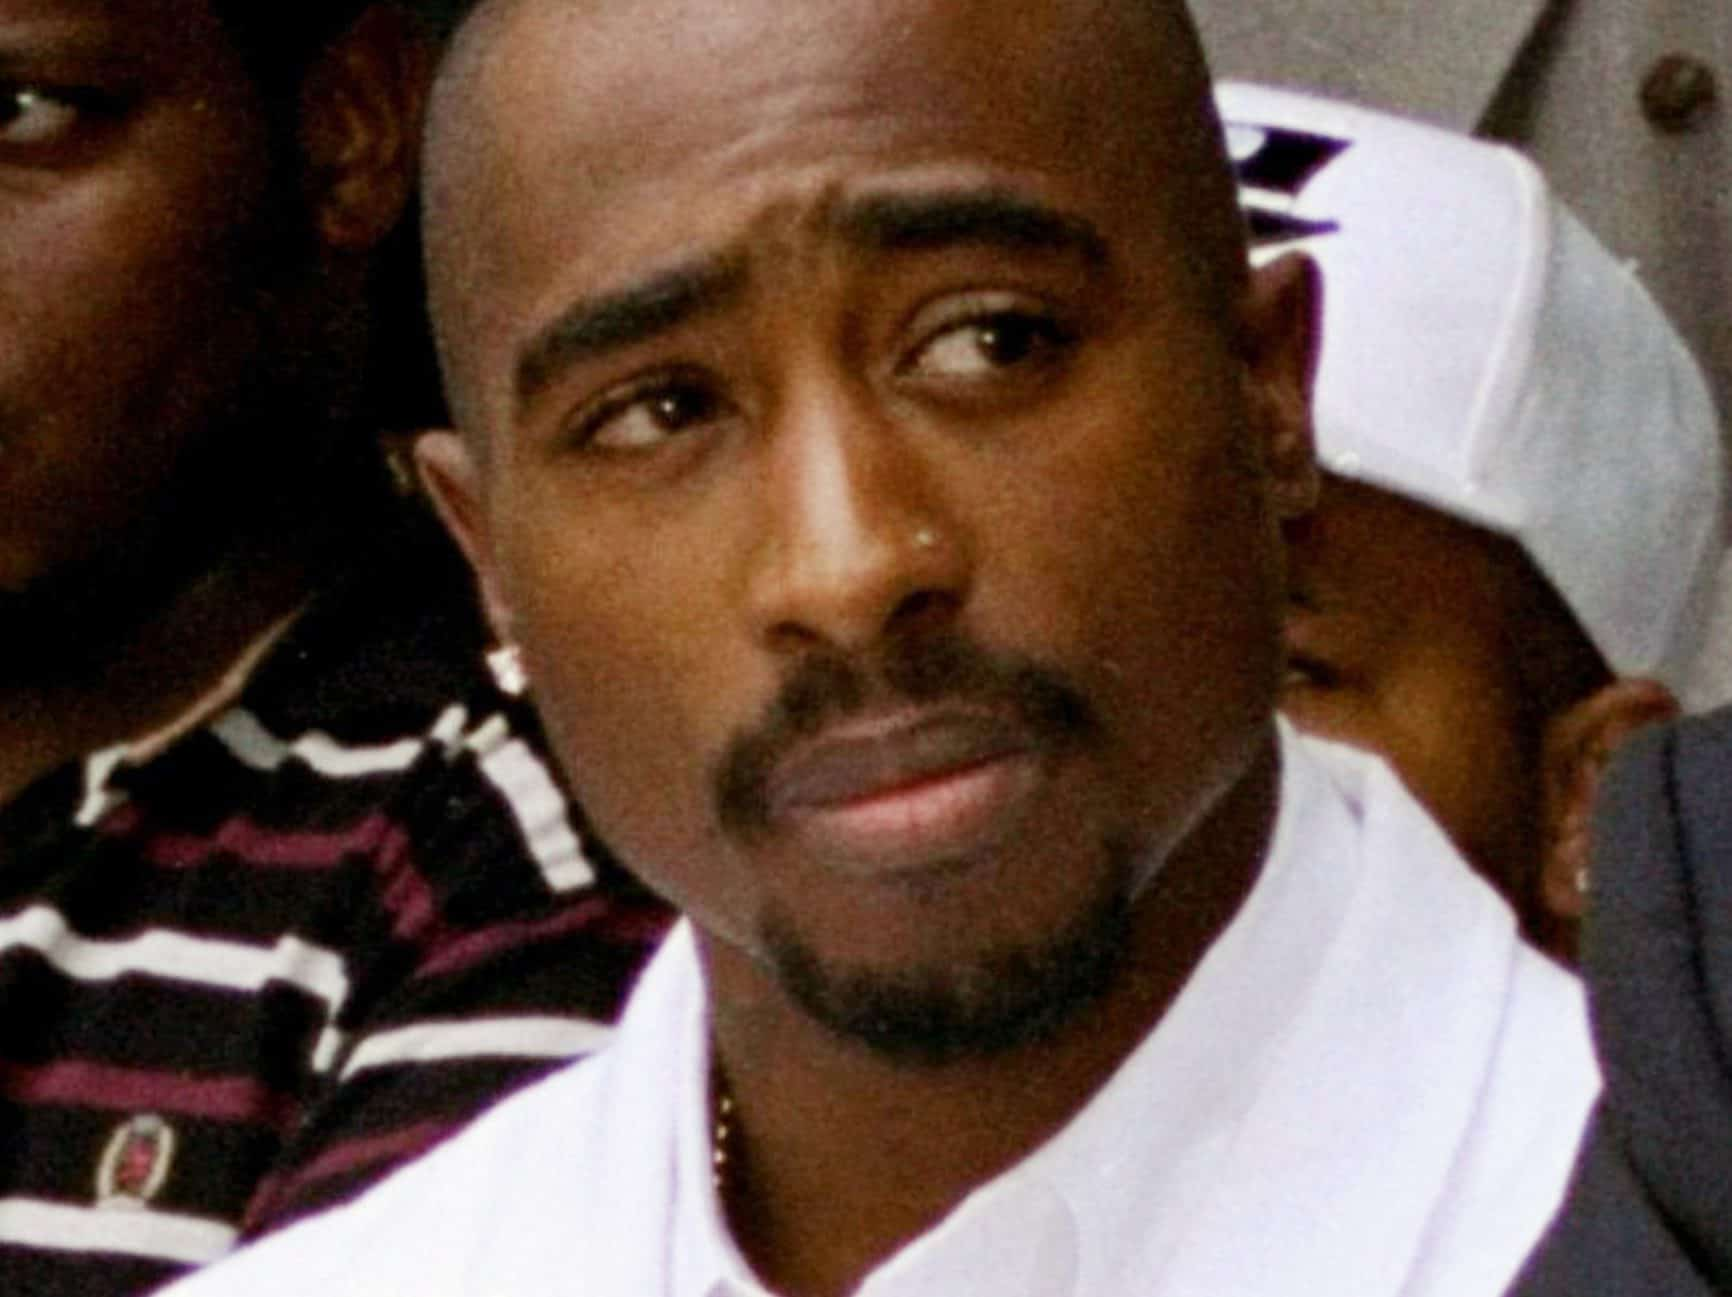 Who killed Tupac? Keefe D 'confesses to involvement' in rapper's murder after cancer diagnosis